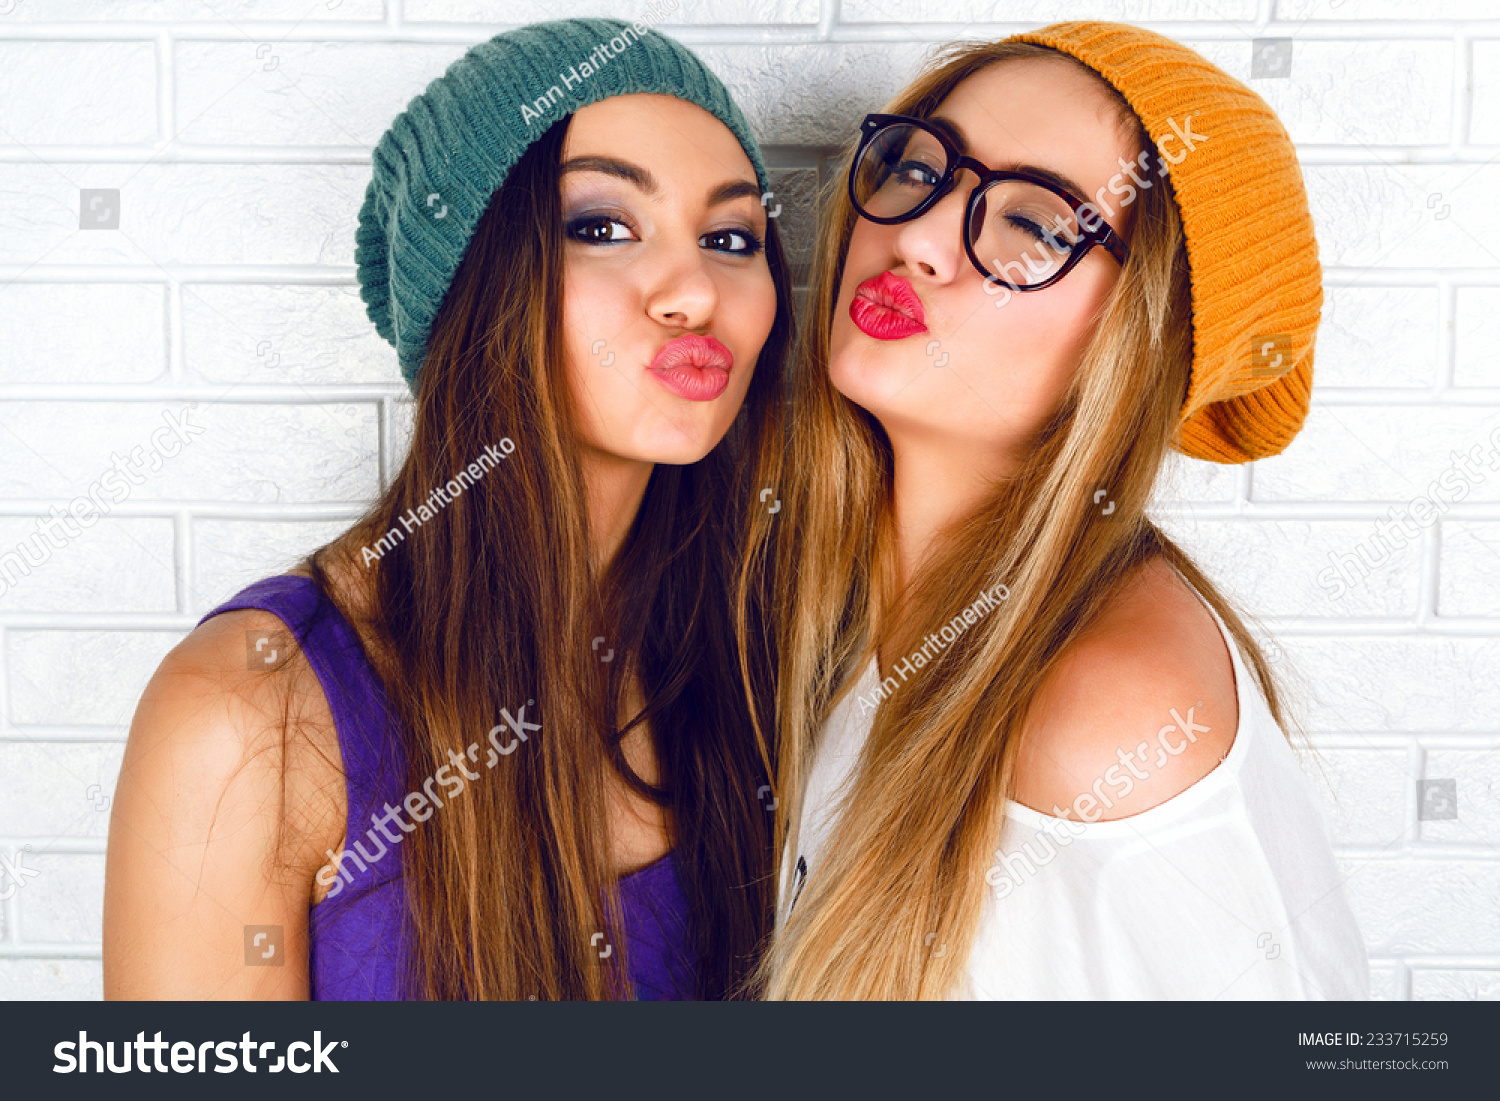 girl kisses best friend